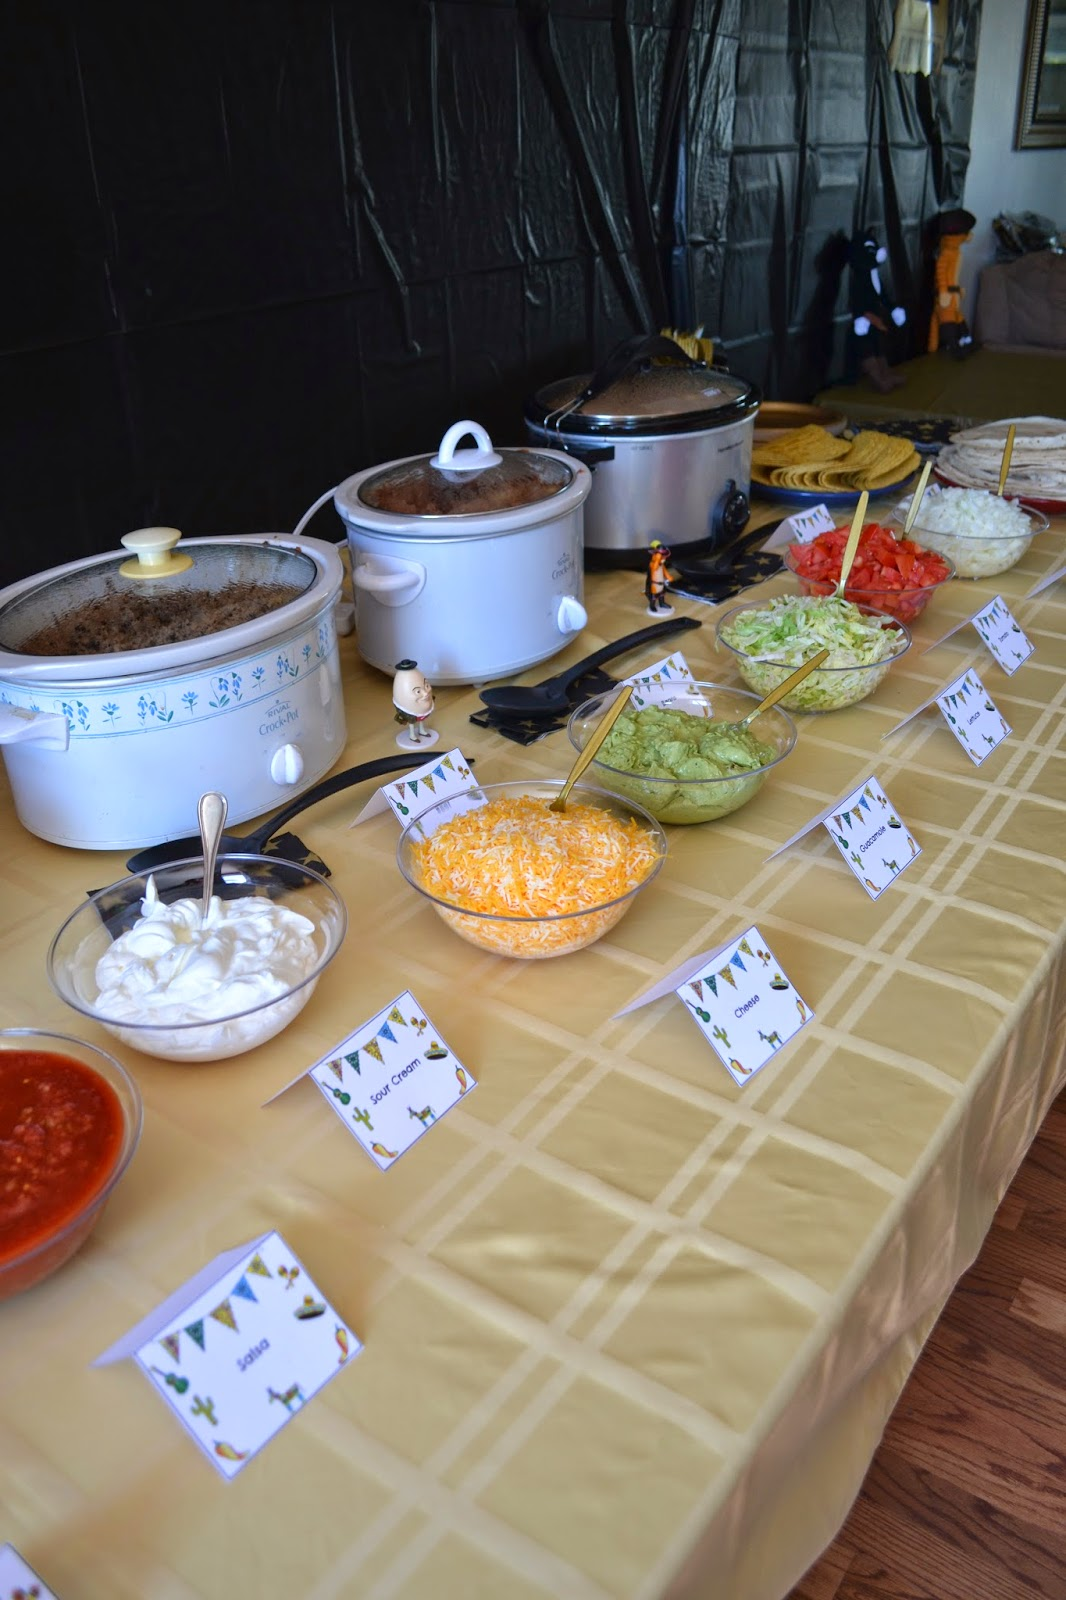 Diy taco bar party table tents free printables for Food bar ideas for a party